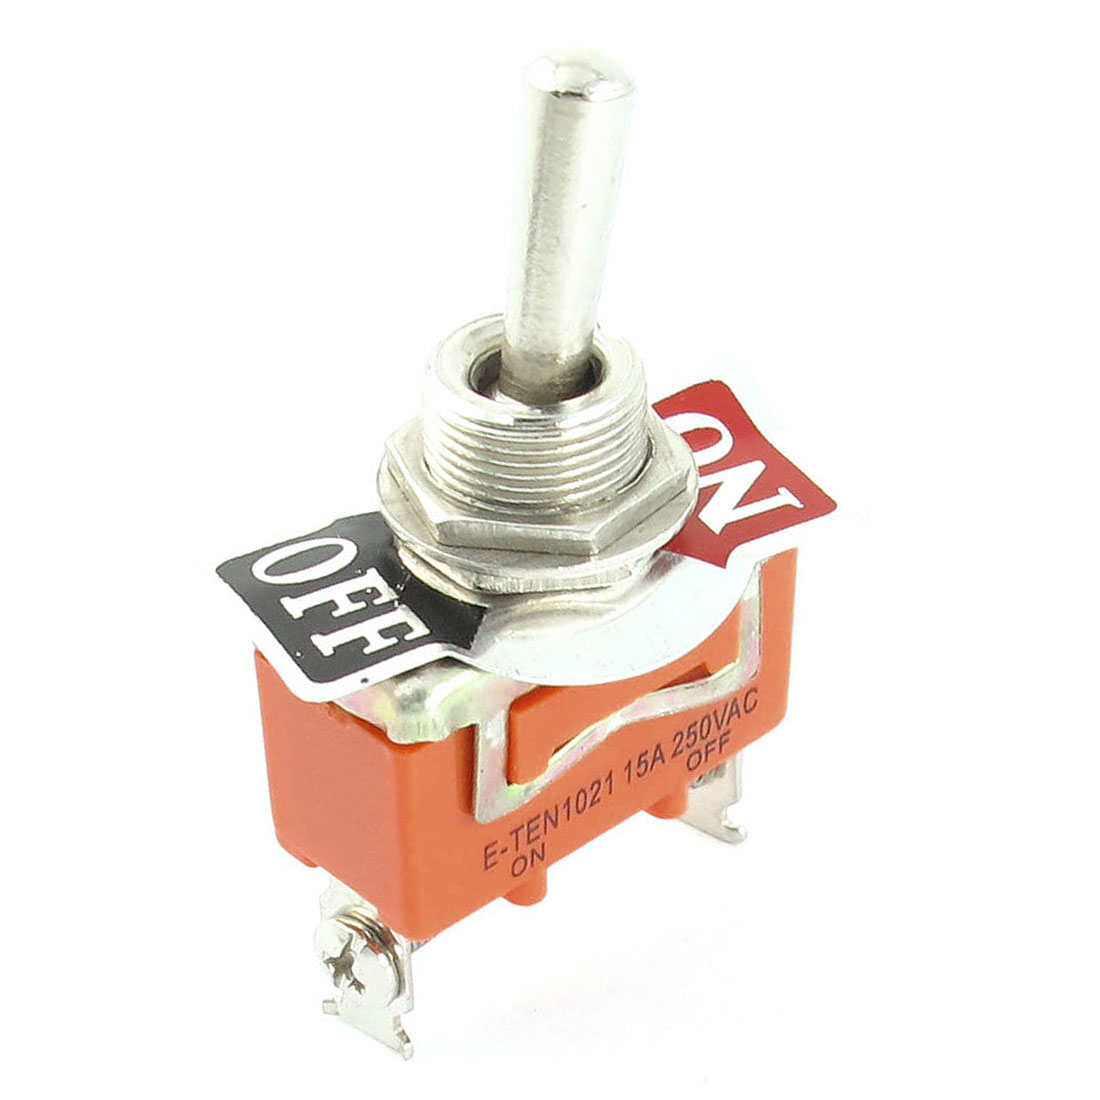 3mm Thread Diameter 2 Position 2-Terminals SPST Toggle Switch AC 250V 15A